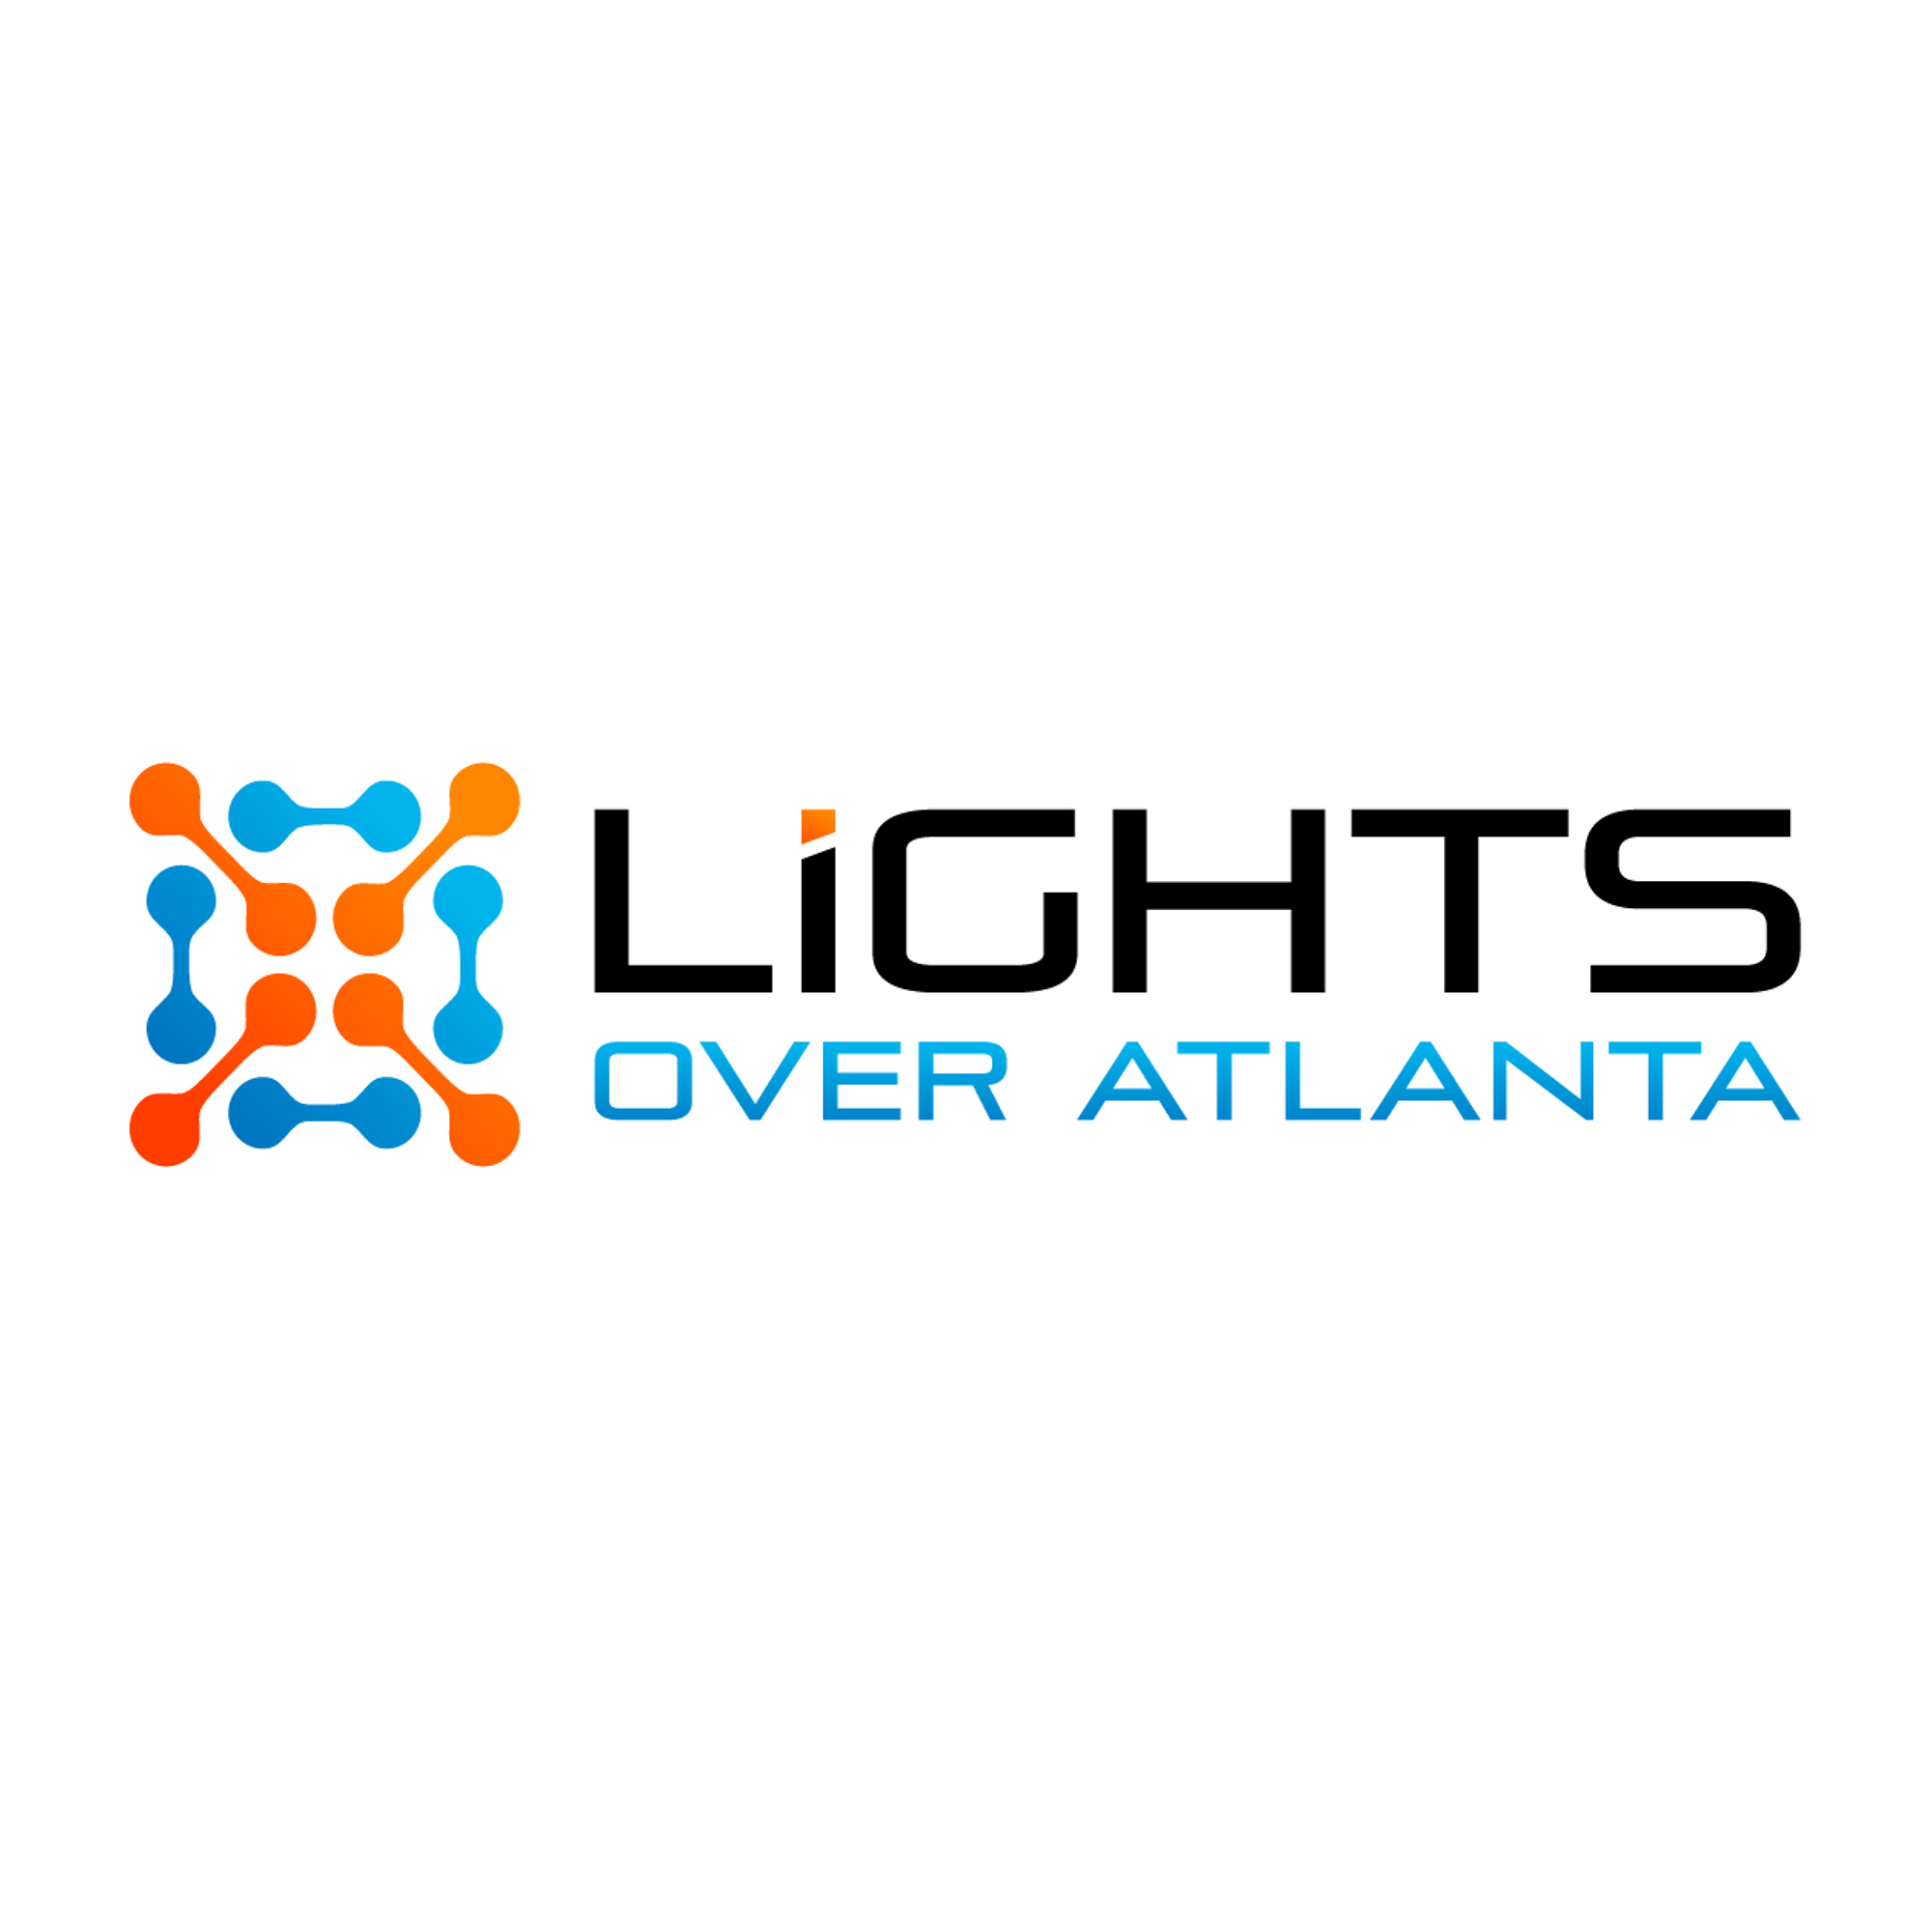 Lights Over Atlanta